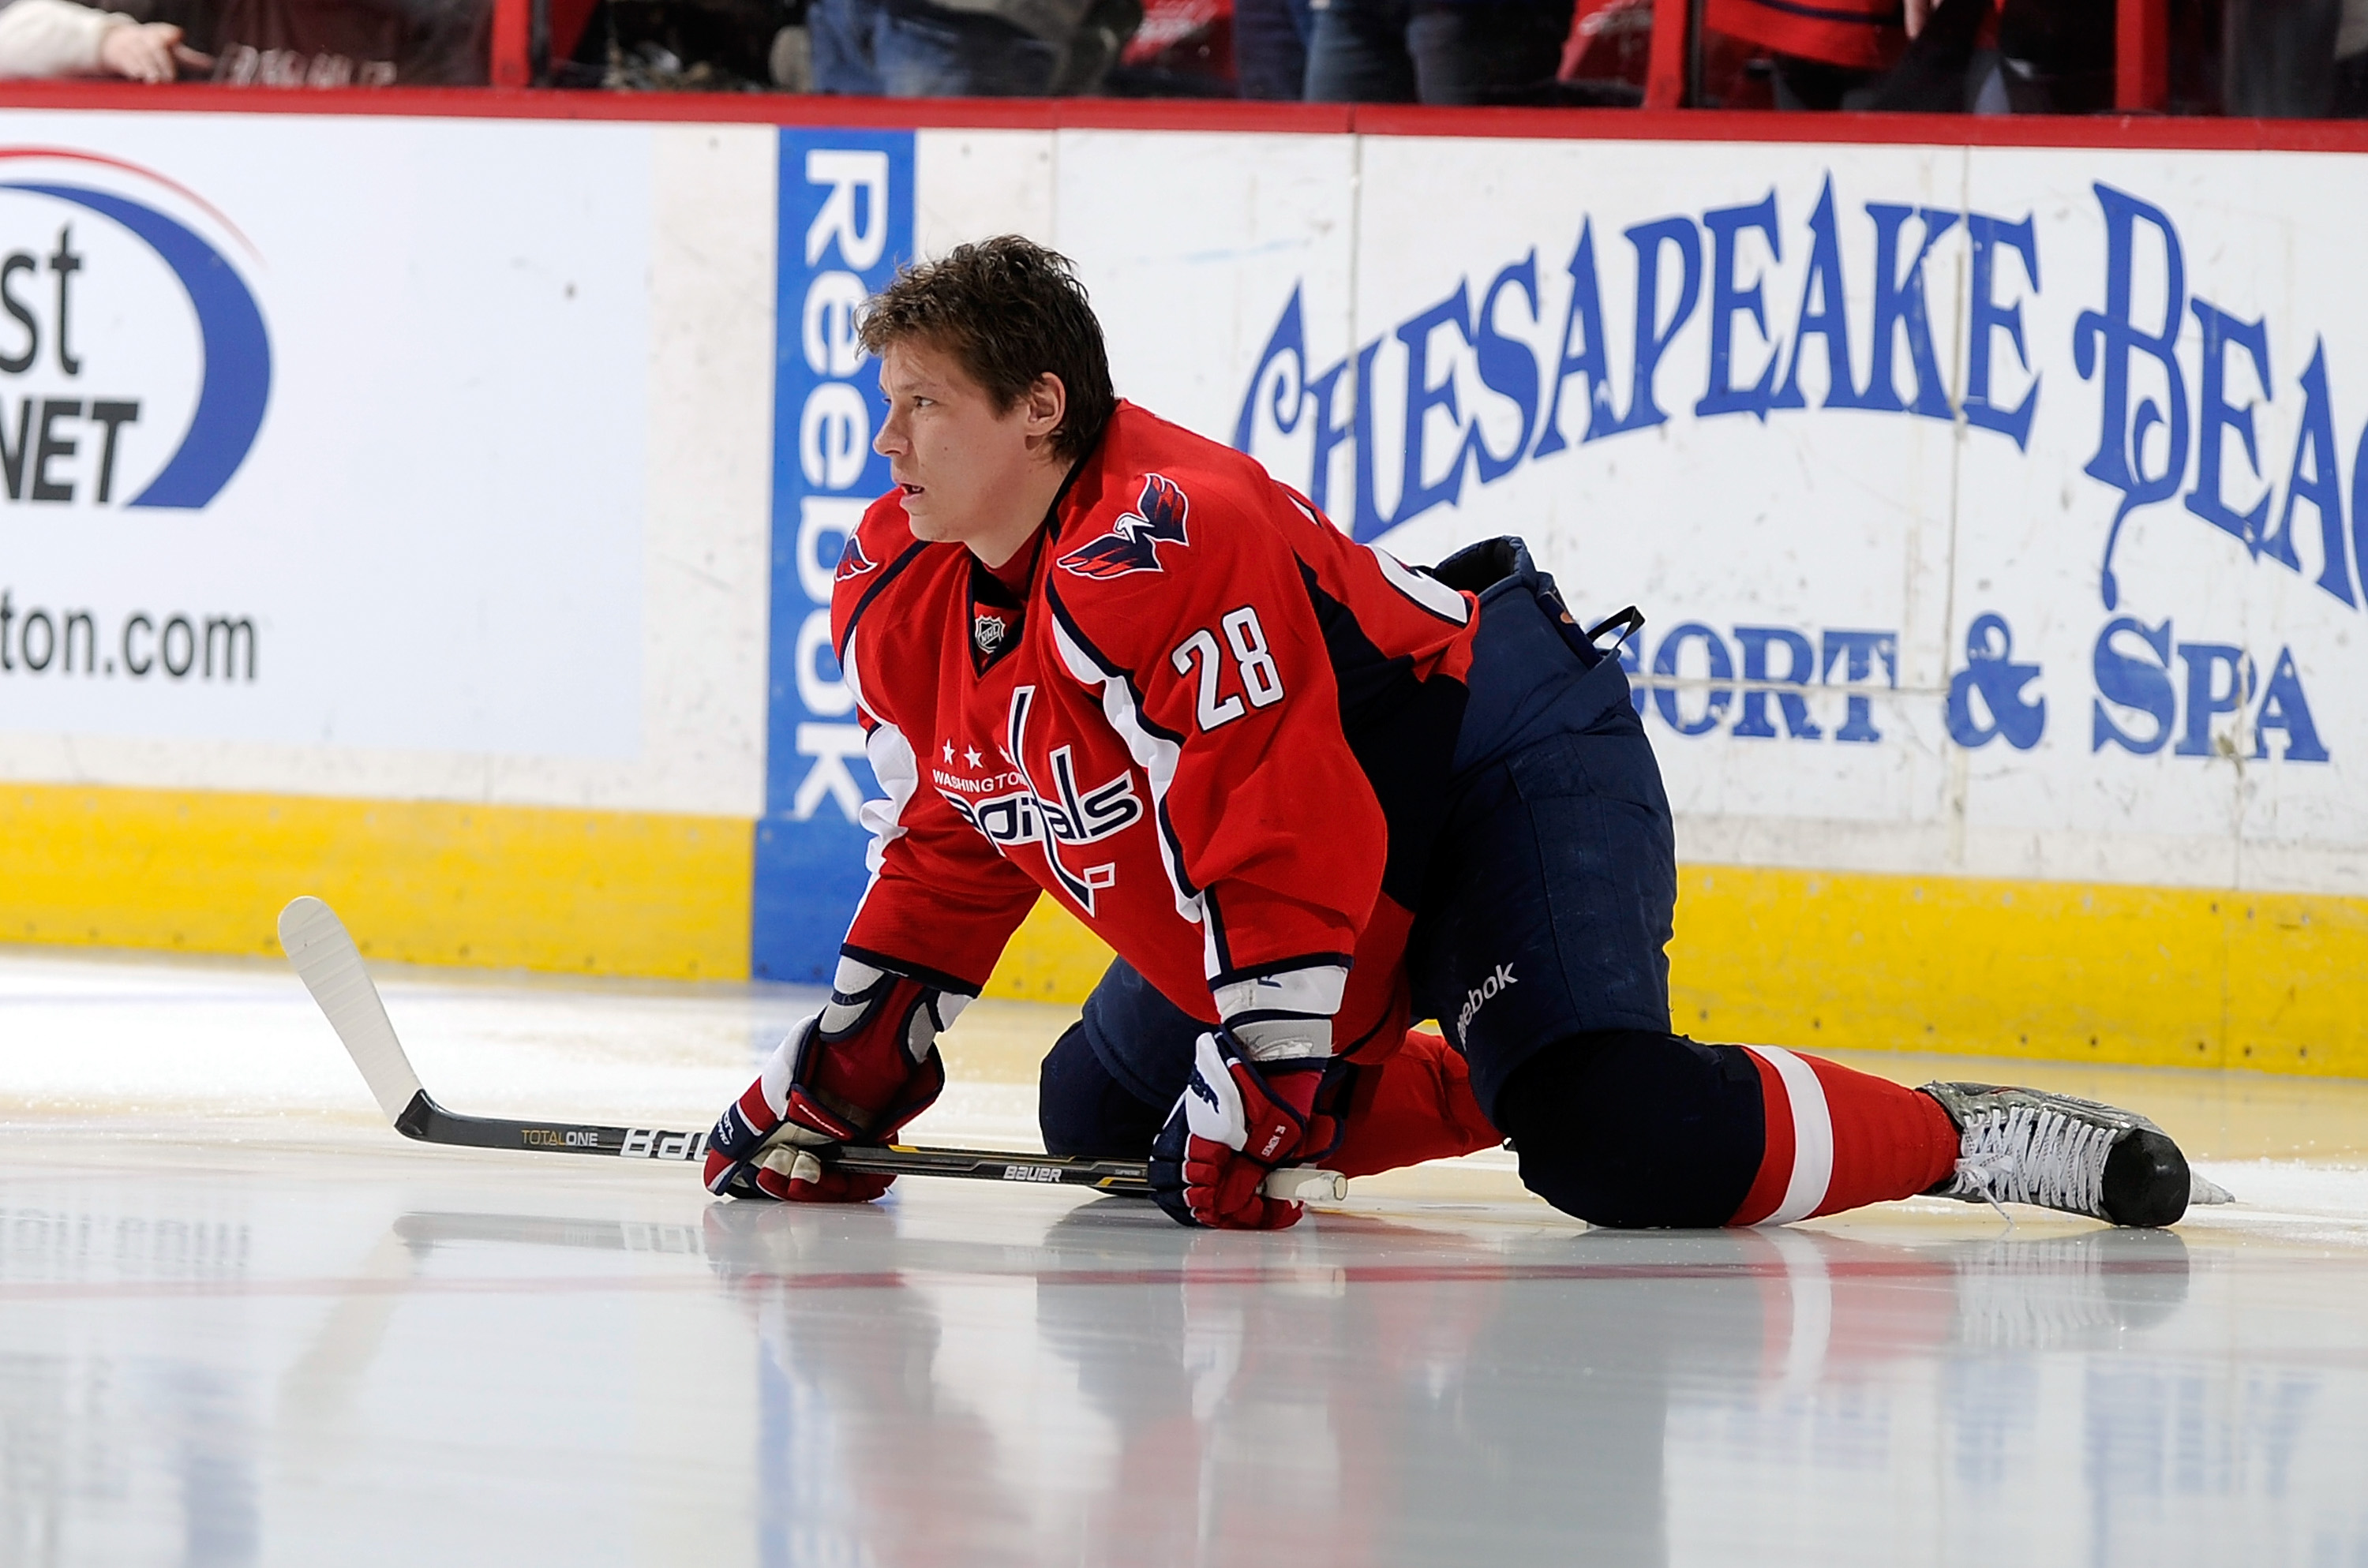 WASHINGTON - JANUARY 08:  Alexander Semin #28 of the Washington Capitals warms up before the game against the Florida Panthers at the Verizon Center on January 8, 2011 in Washington, DC.  (Photo by Greg Fiume/Getty Images)